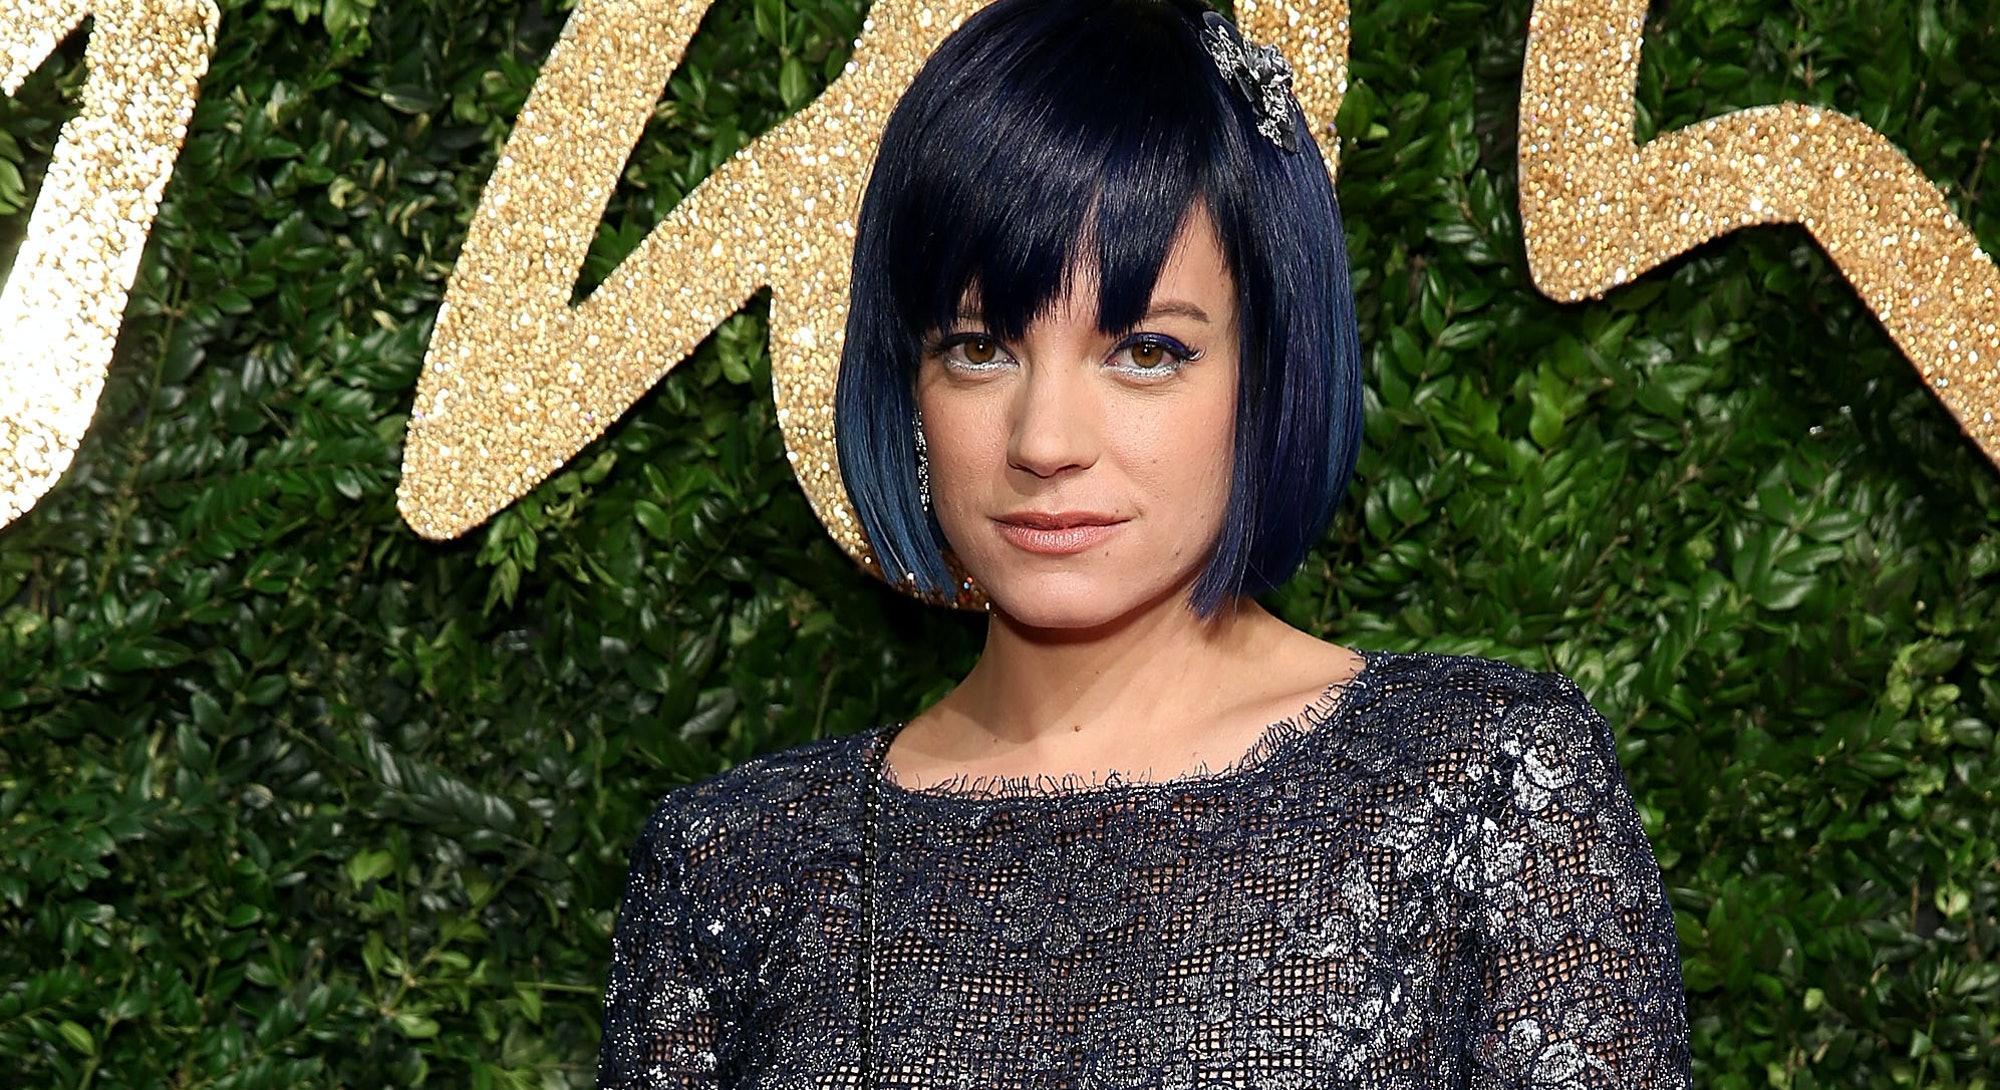 Lily Allen at the 2015 British Fashion Awards.